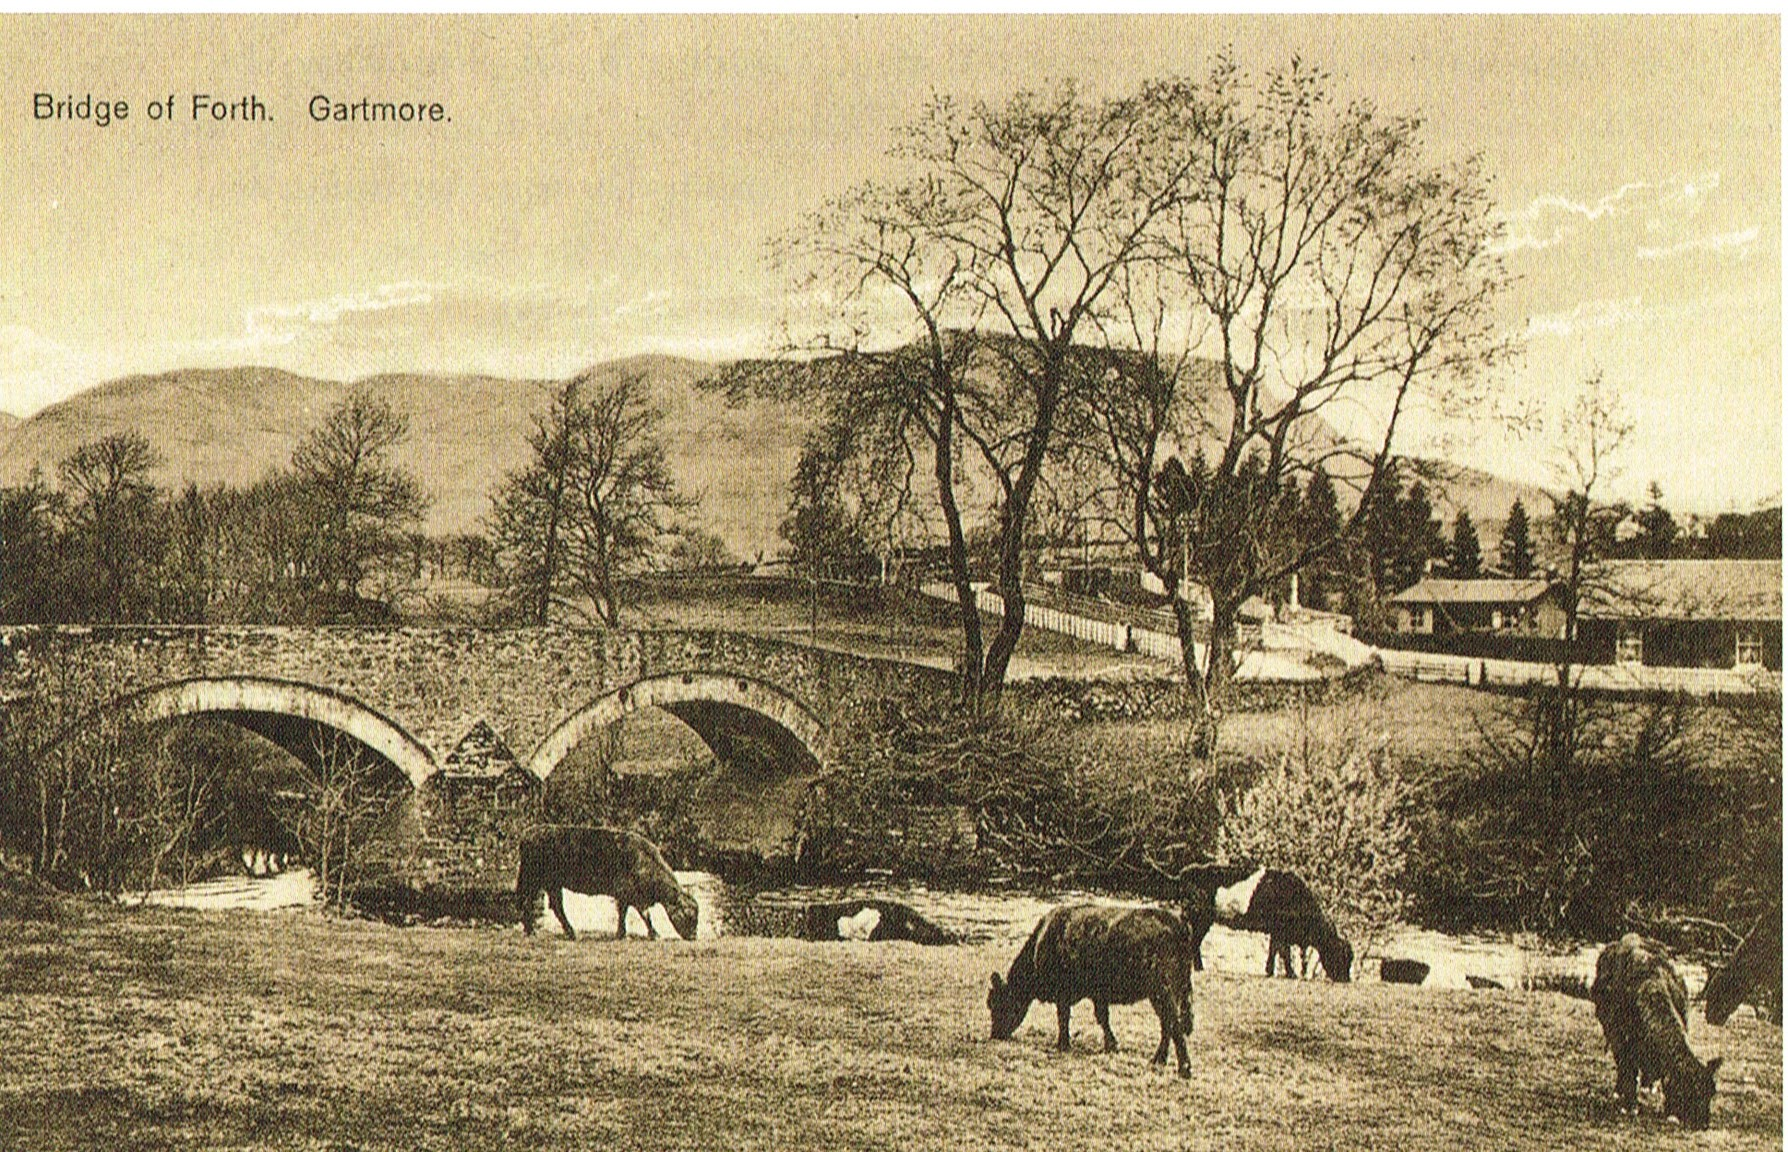 Black and white photograph of the Bridge of Forth on the Gartmore Estate